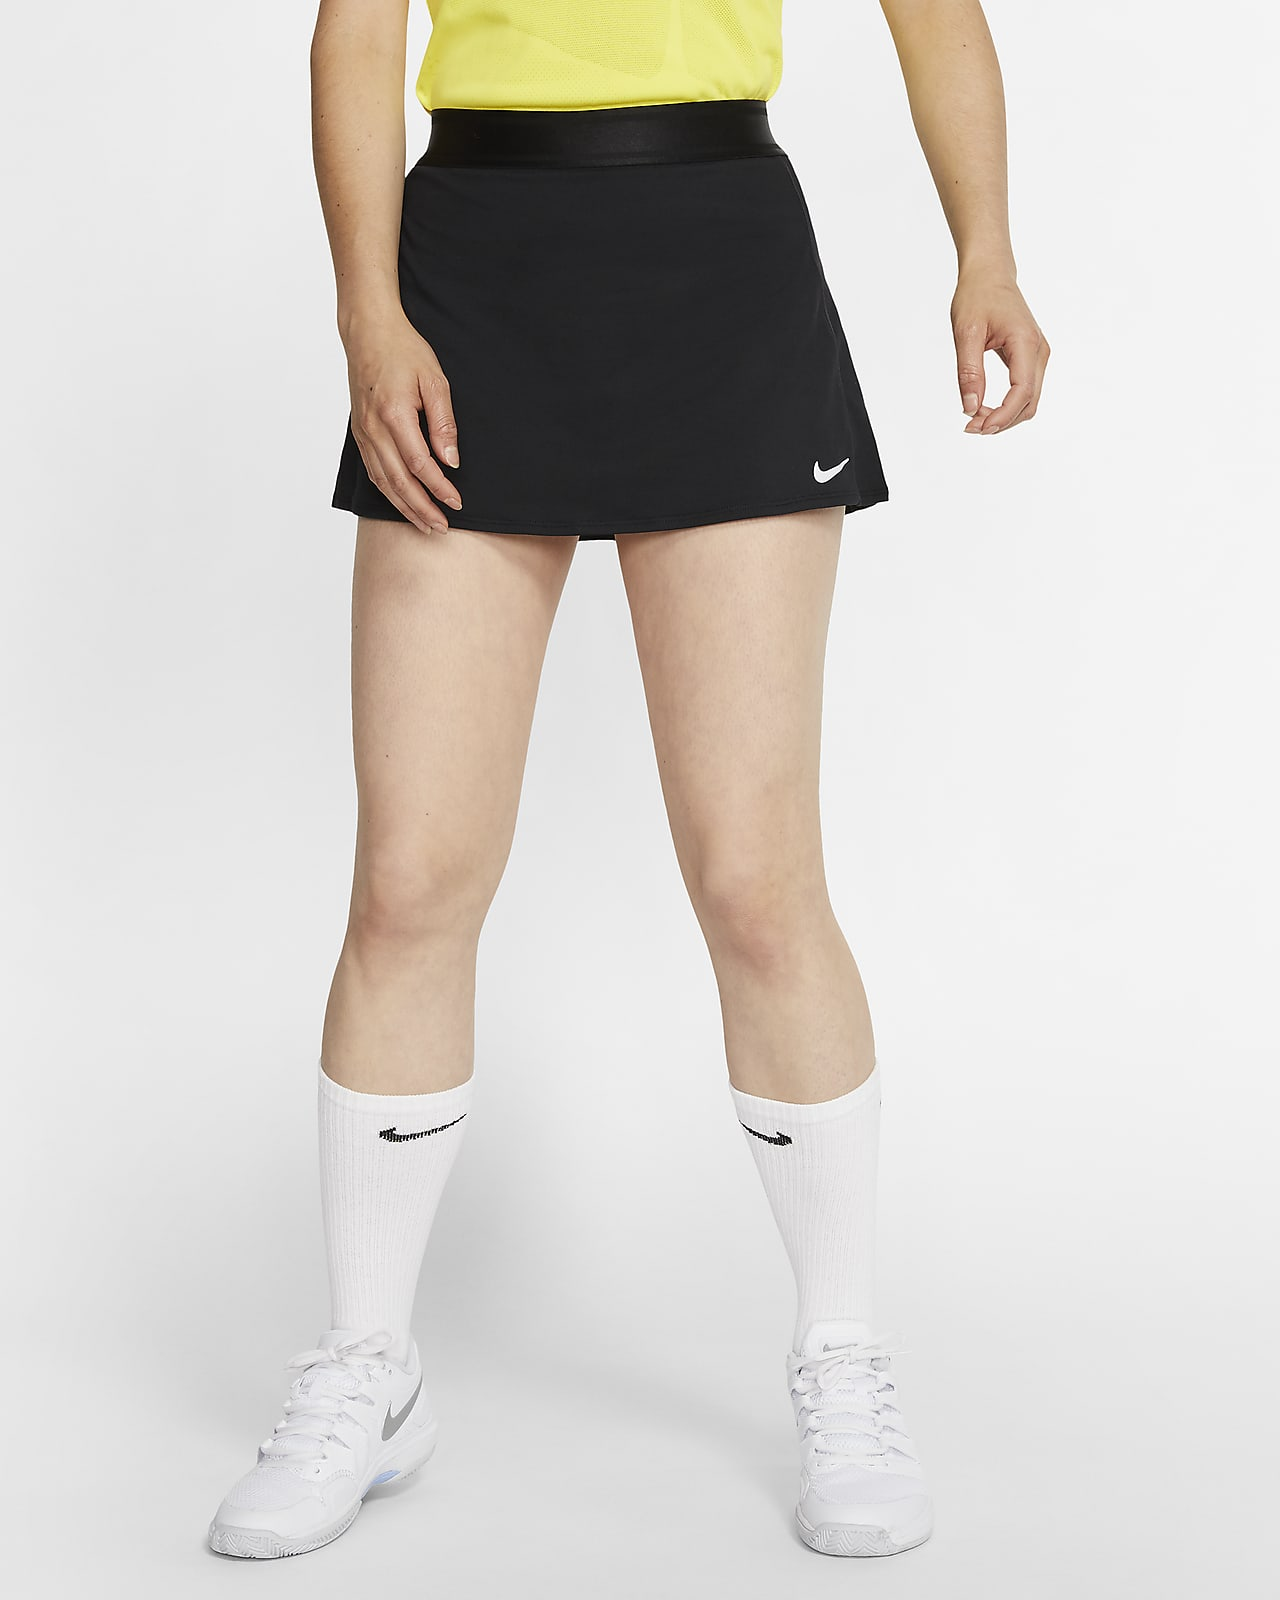 Nikecourt Dri Fit Women S Tennis Skirt Nike Com Nike tennis skirt womens xs or medium authentic white nikecourt dri fit training. nikecourt dri fit women s tennis skirt